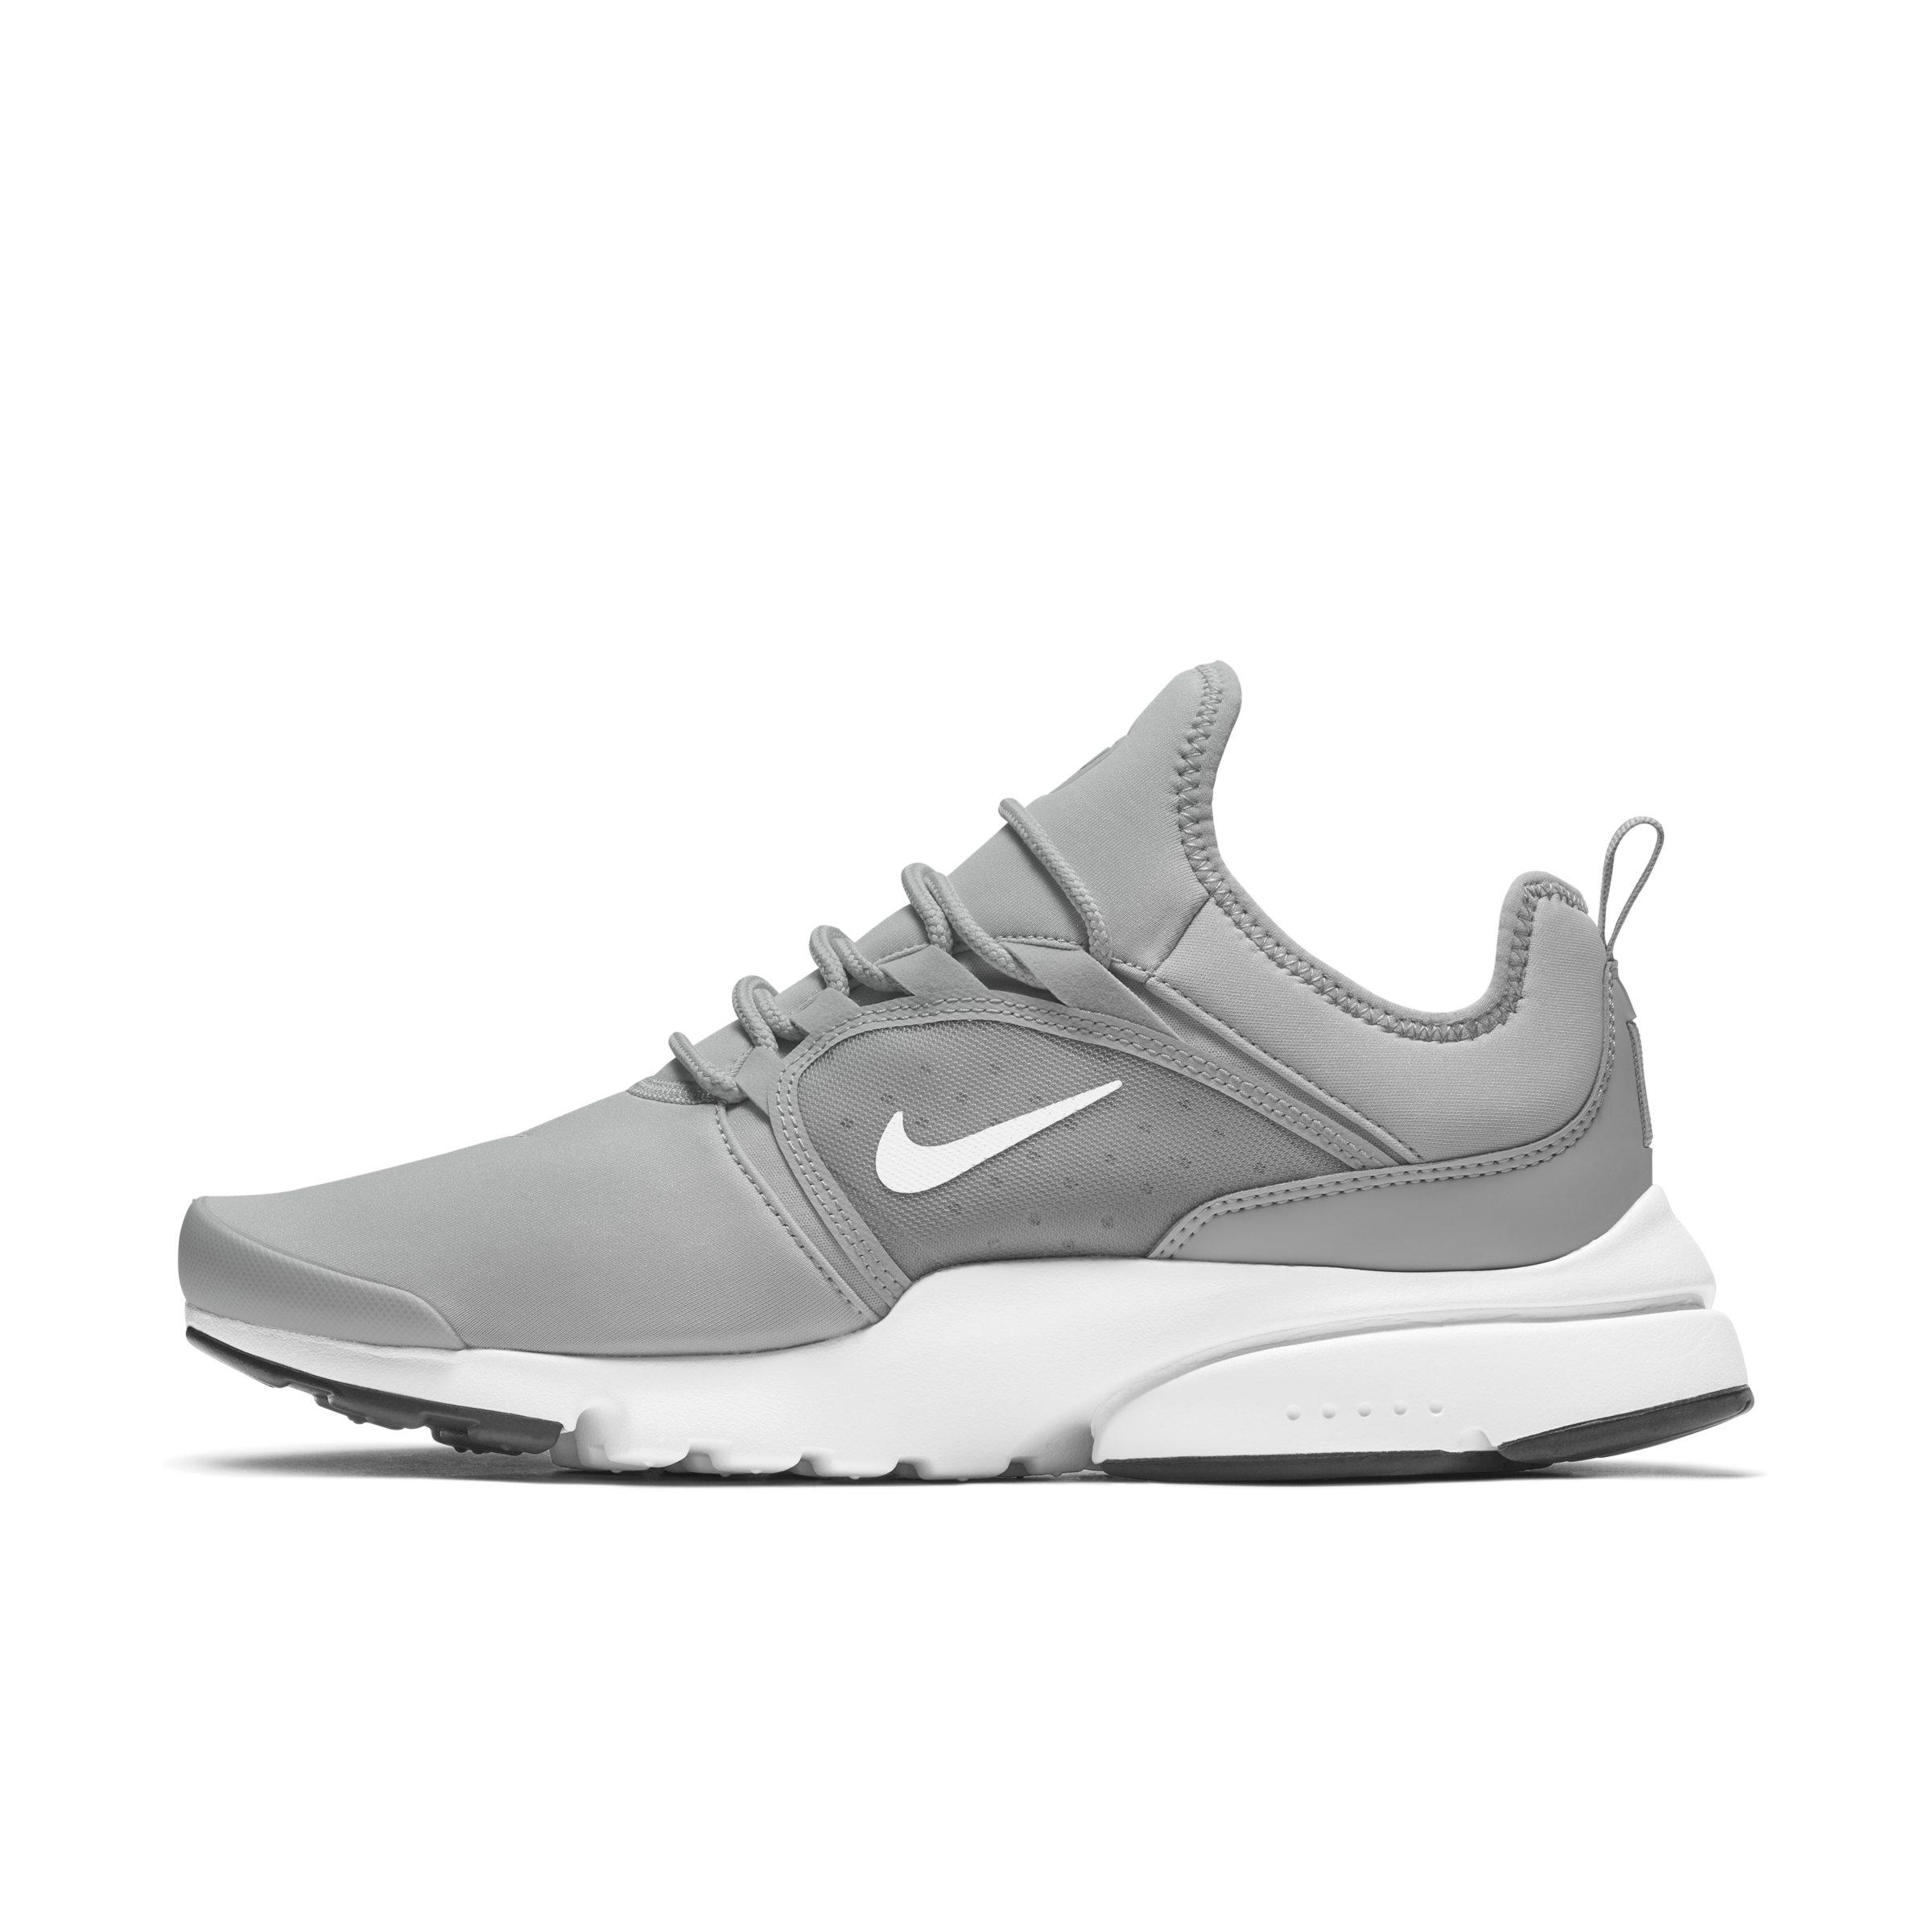 13a936aa1c873e Nike Presto Fly World Shoe in Gray for Men - Lyst